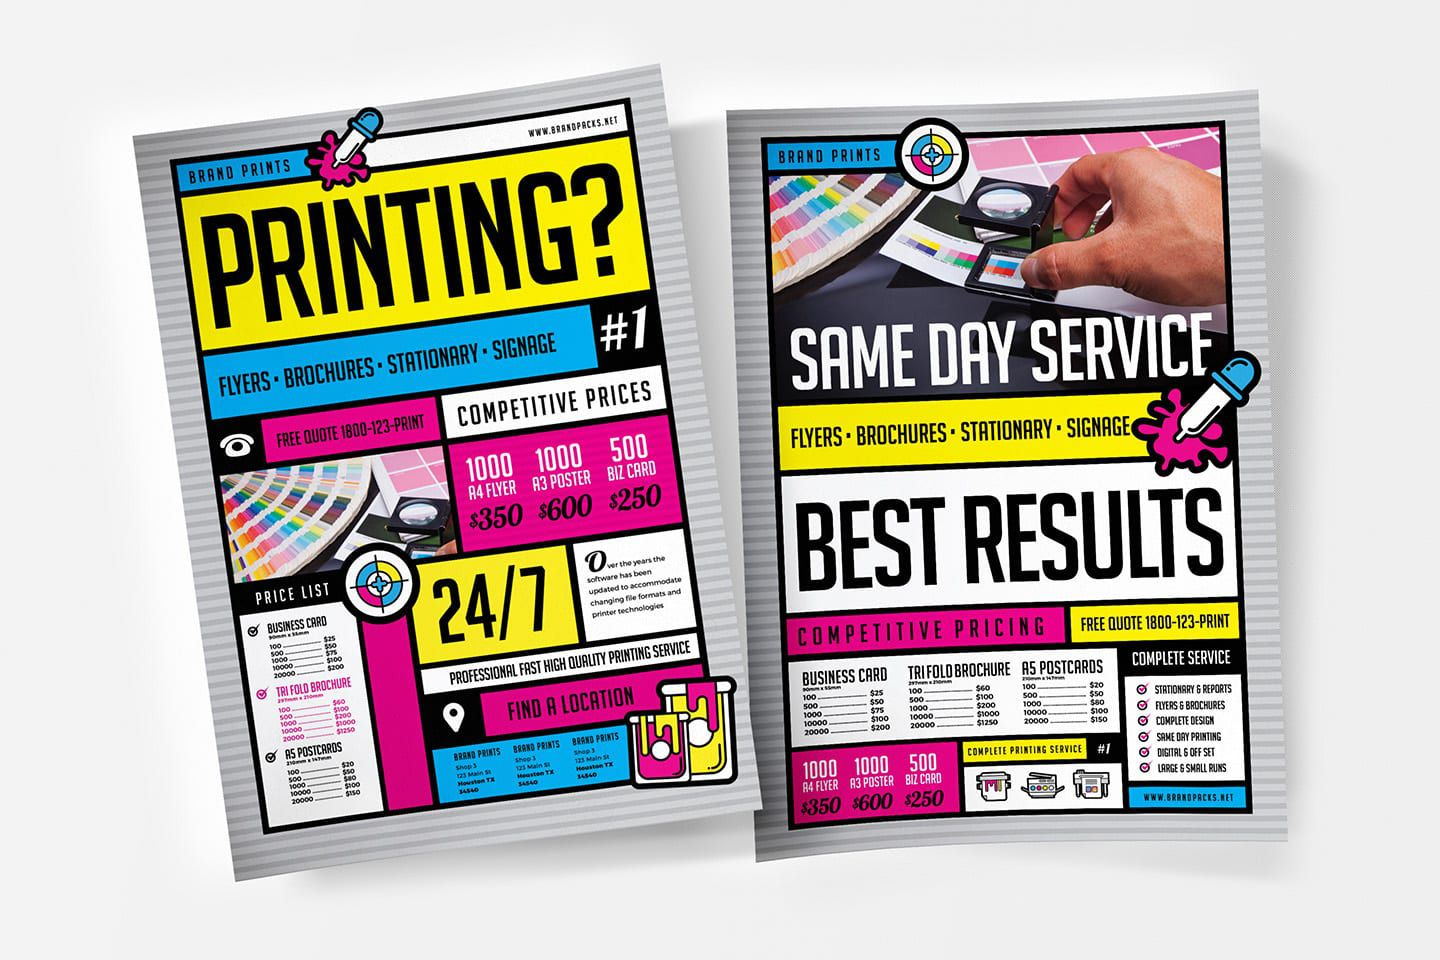 009 Exceptional Free Print Ad Template Concept  Templates Real Estate For WordFull